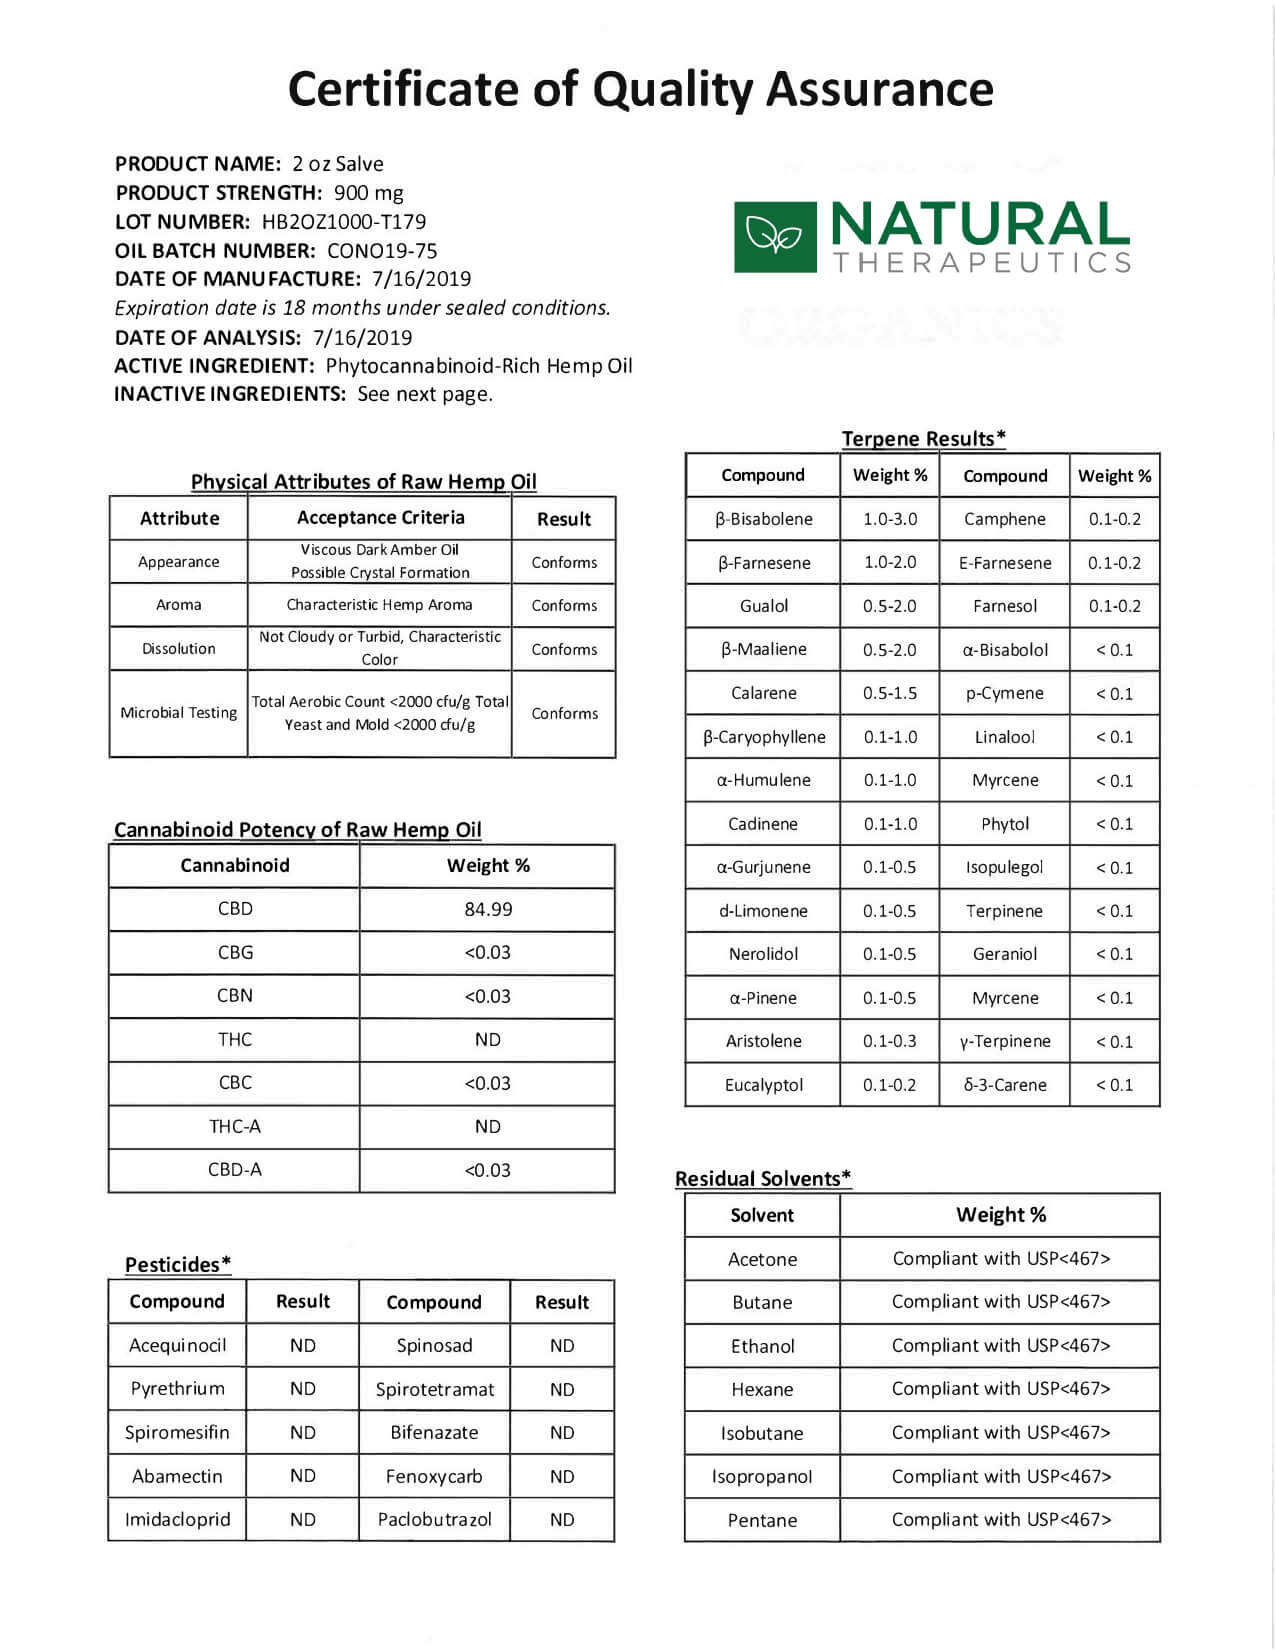 Natural Therapeutics CBD Topical Soothe Salve 1000mg Lab Report